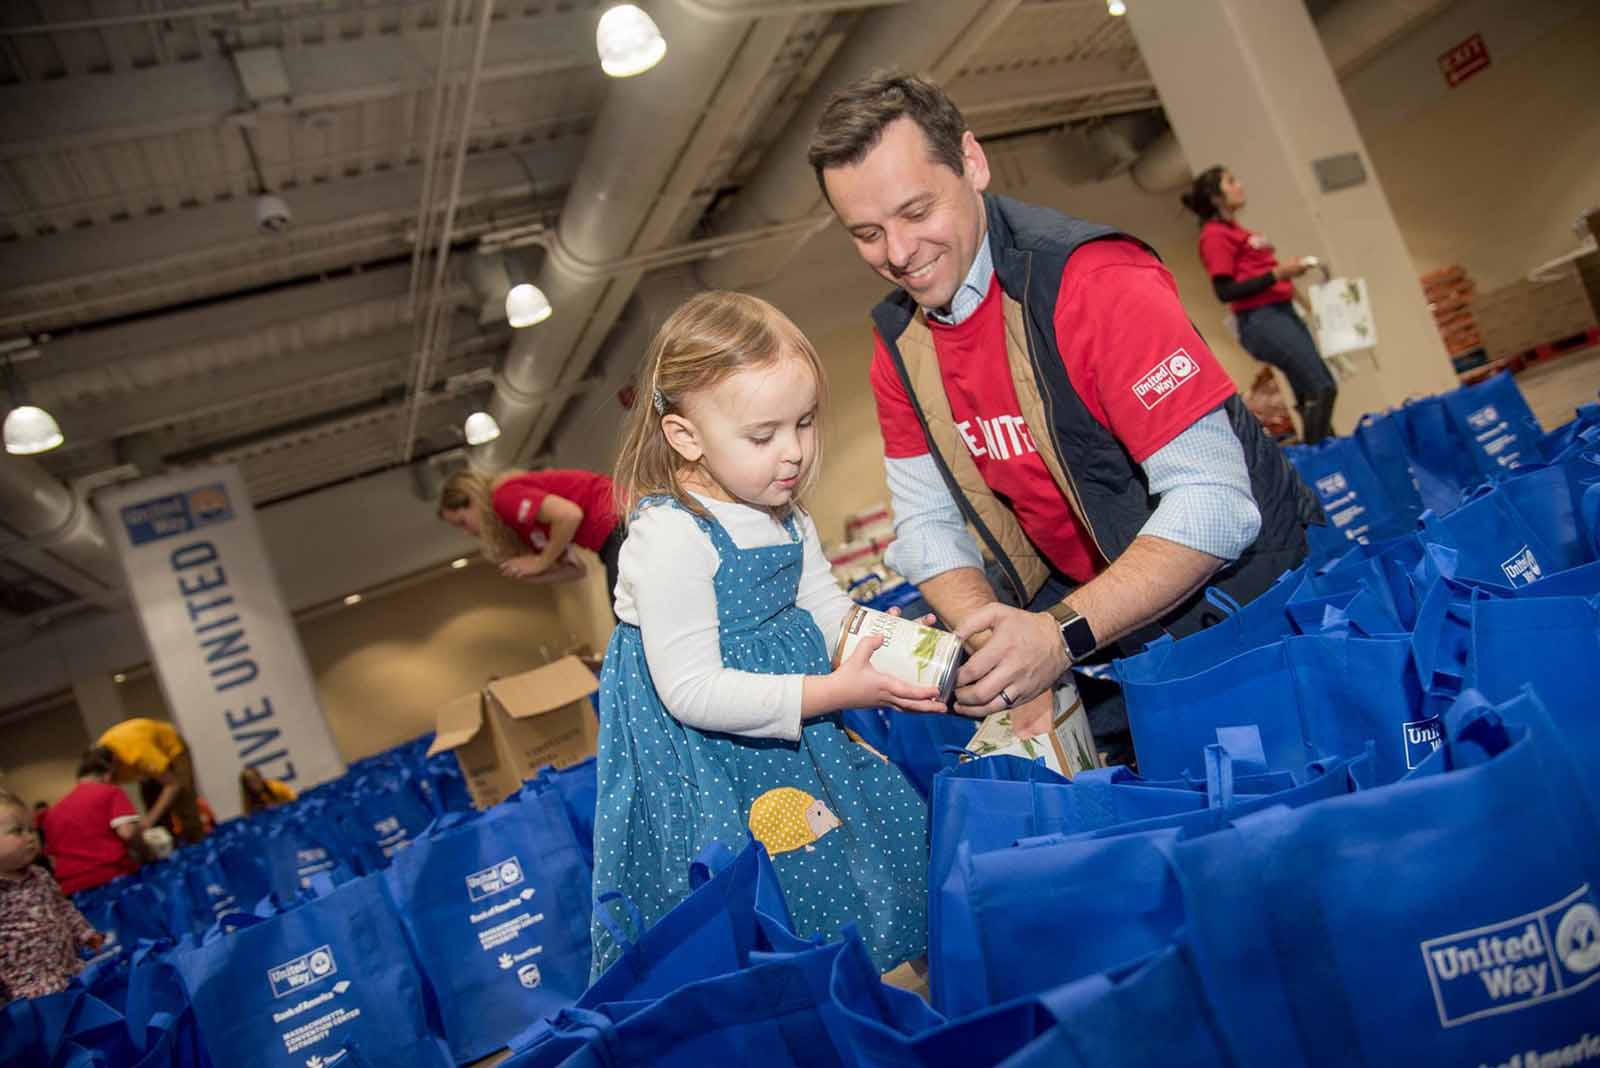 Bain Capital Closes another Successful Campaign with United Way